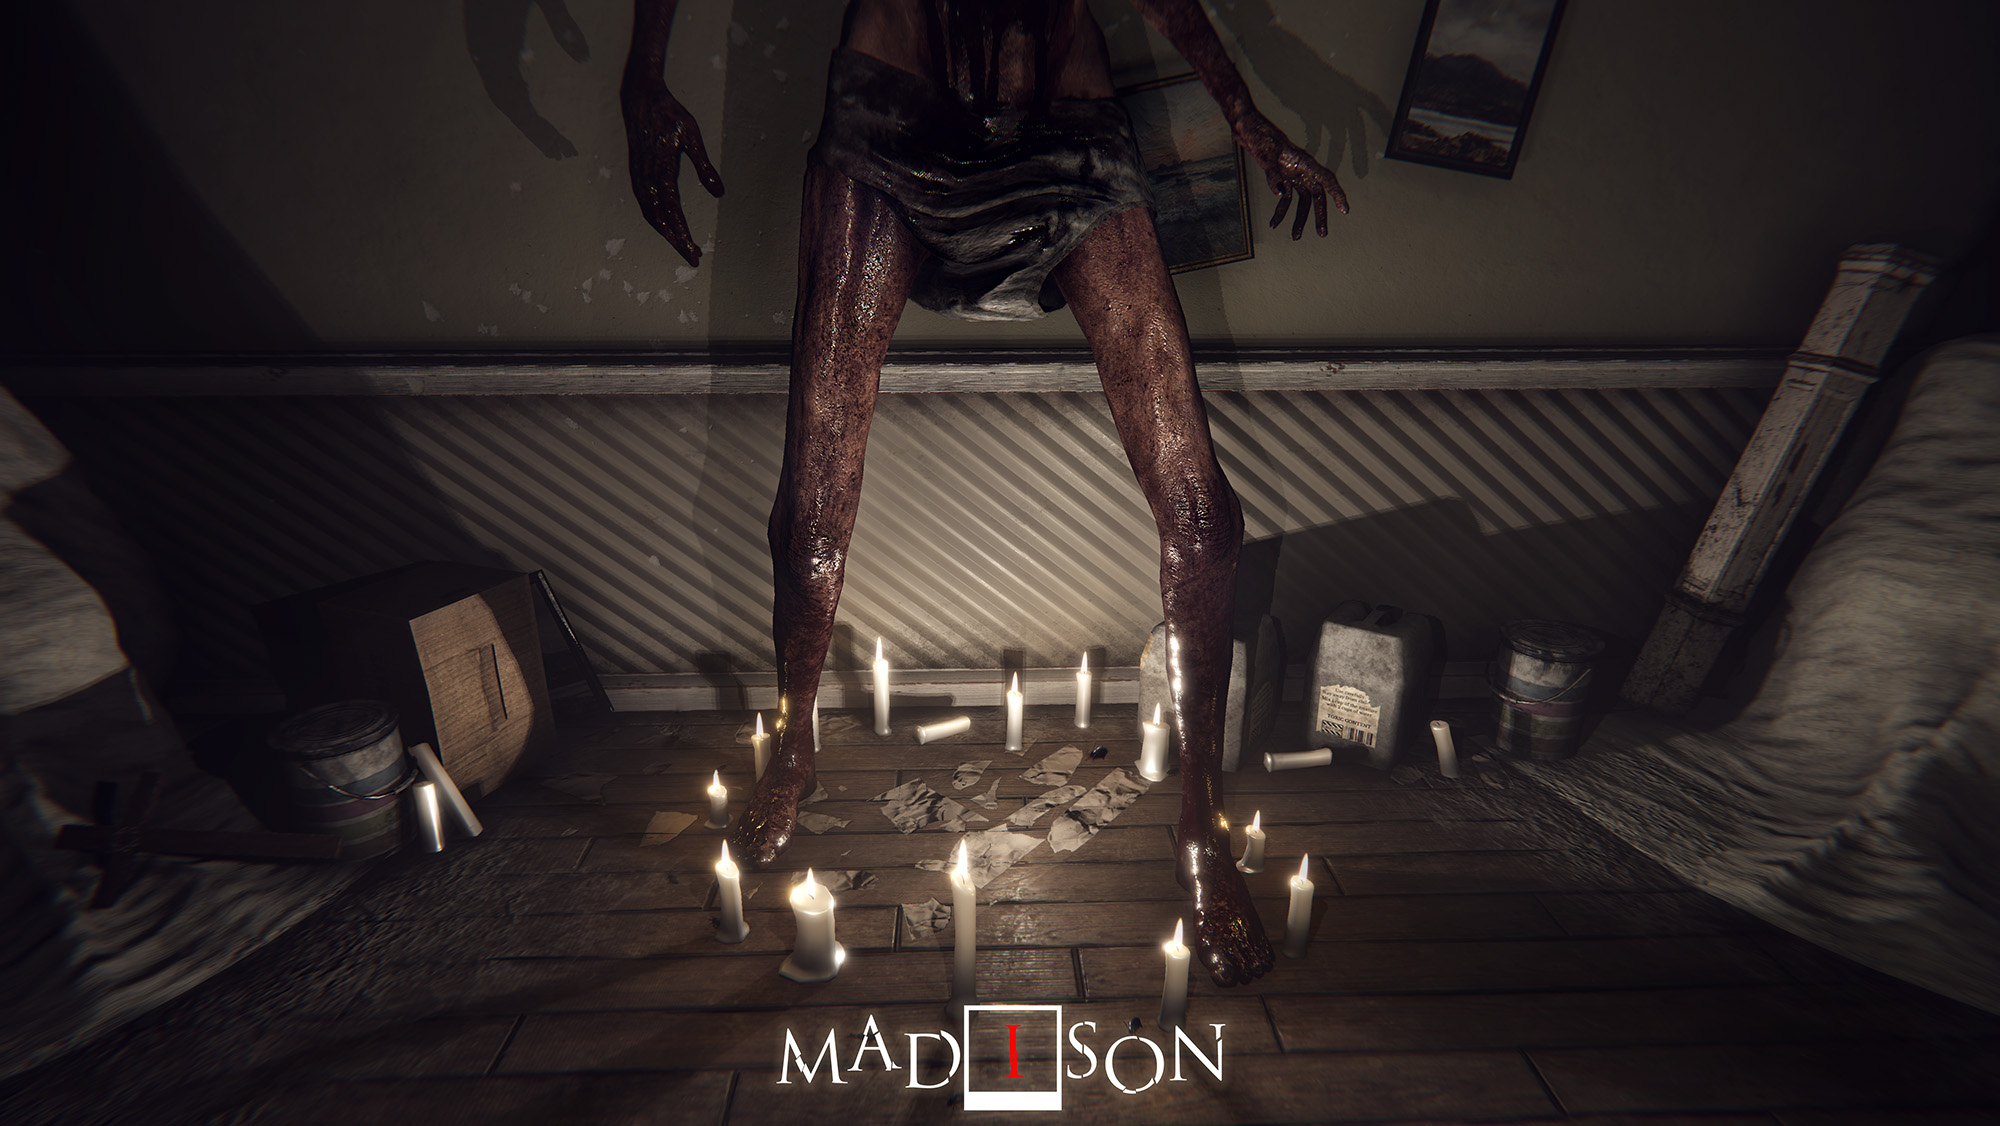 MADiSON PSYCHOLOGICAL HORROR GAME